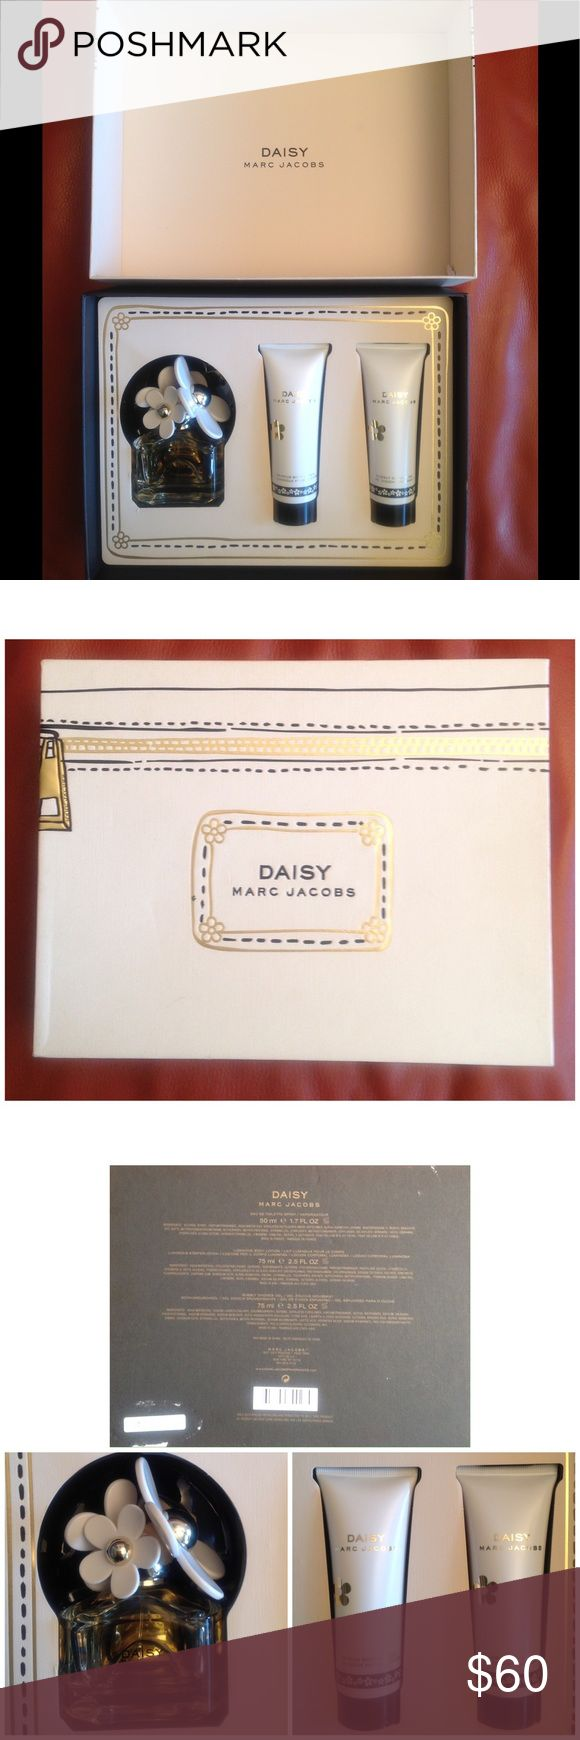 Marc Jacobs DAISY Perfume Set Brand New. Perfume set. Contains Eau De Toilette 1.7FL Oz Perfume. 2.5oz Luminous Body Lotion. 2.5oz Bubbly Shower Gel. This perfume smells delicious you will love it! 😍 Marc Jacobs Makeup